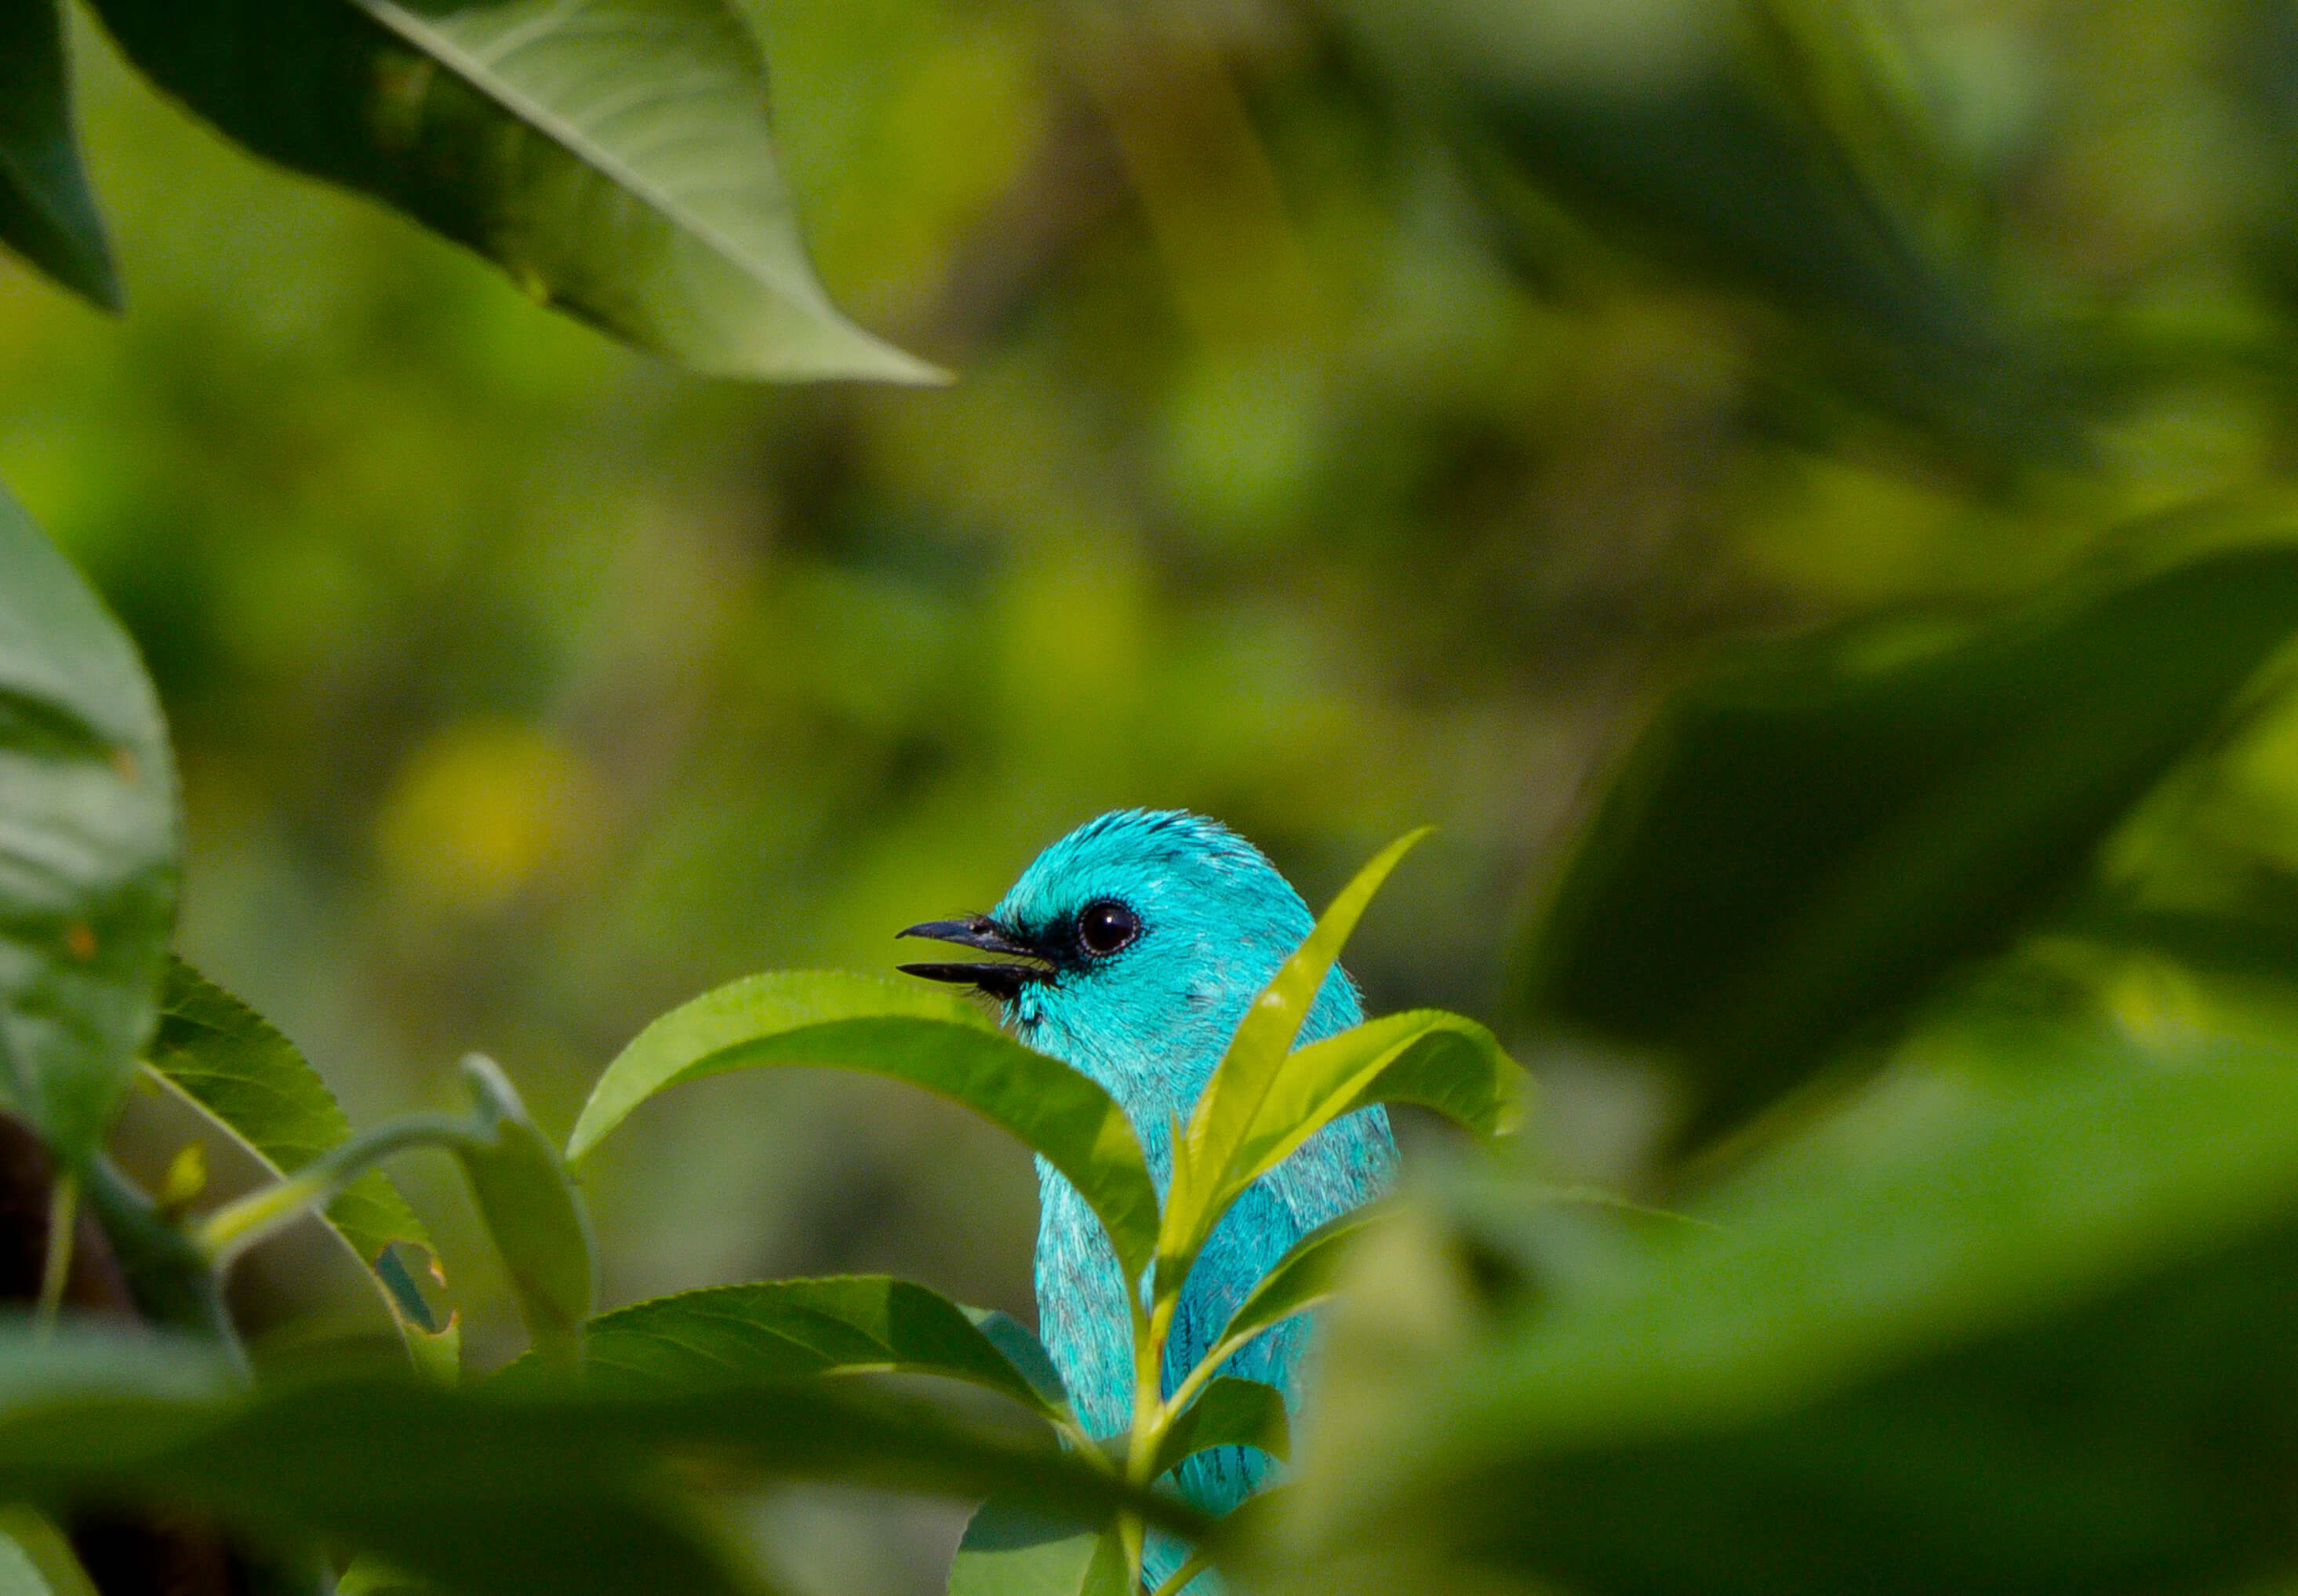 a blue bird in a jungle